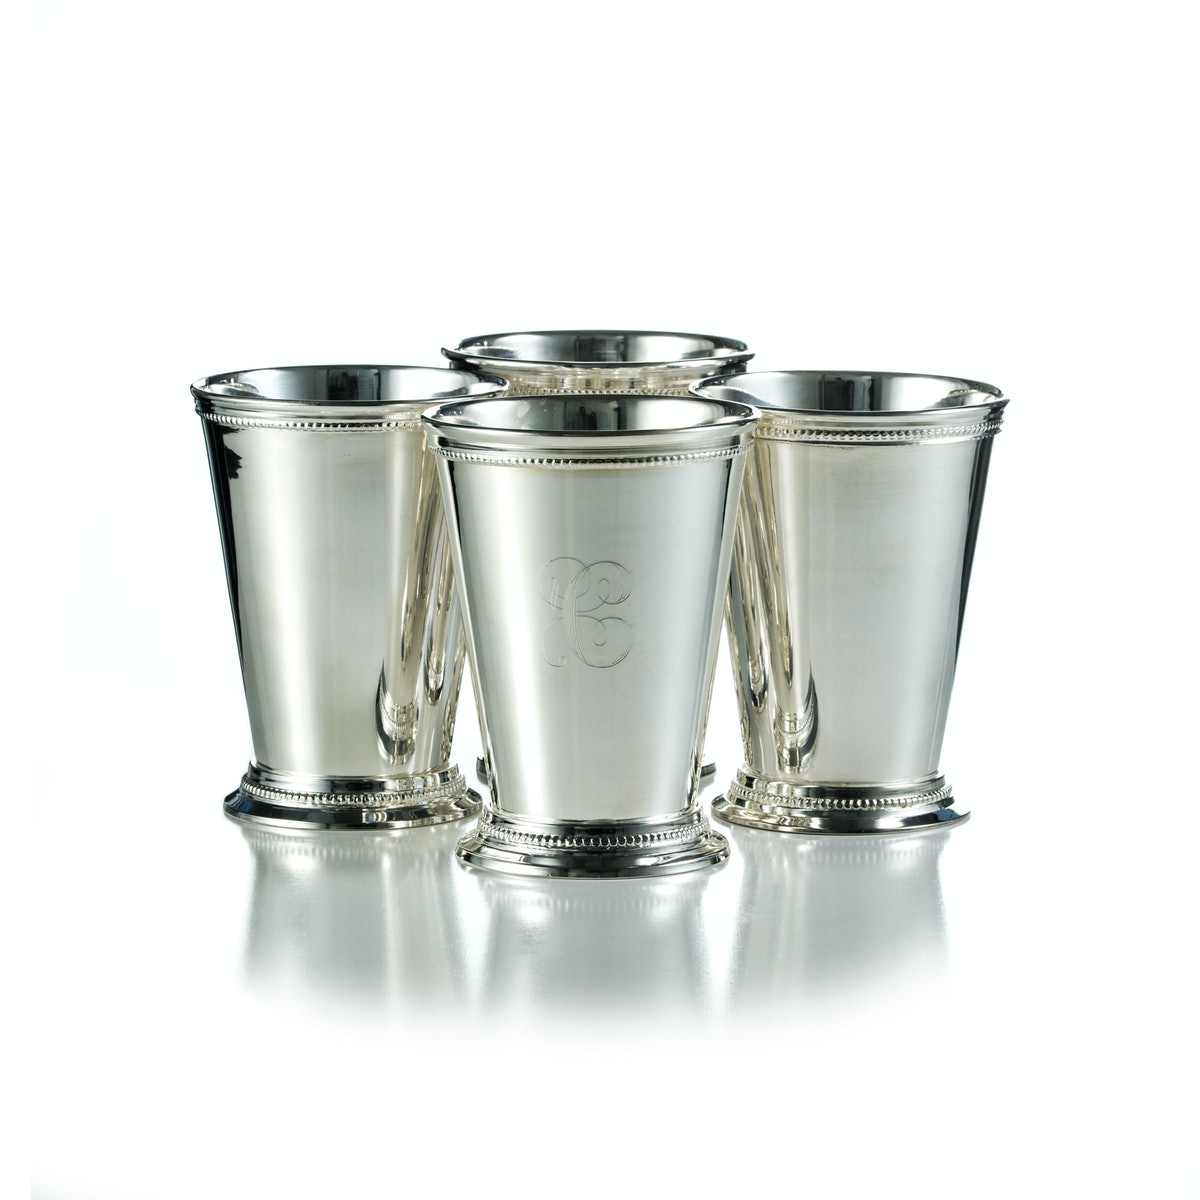 Silver-plated mint julep cups, $200 for a set of four.